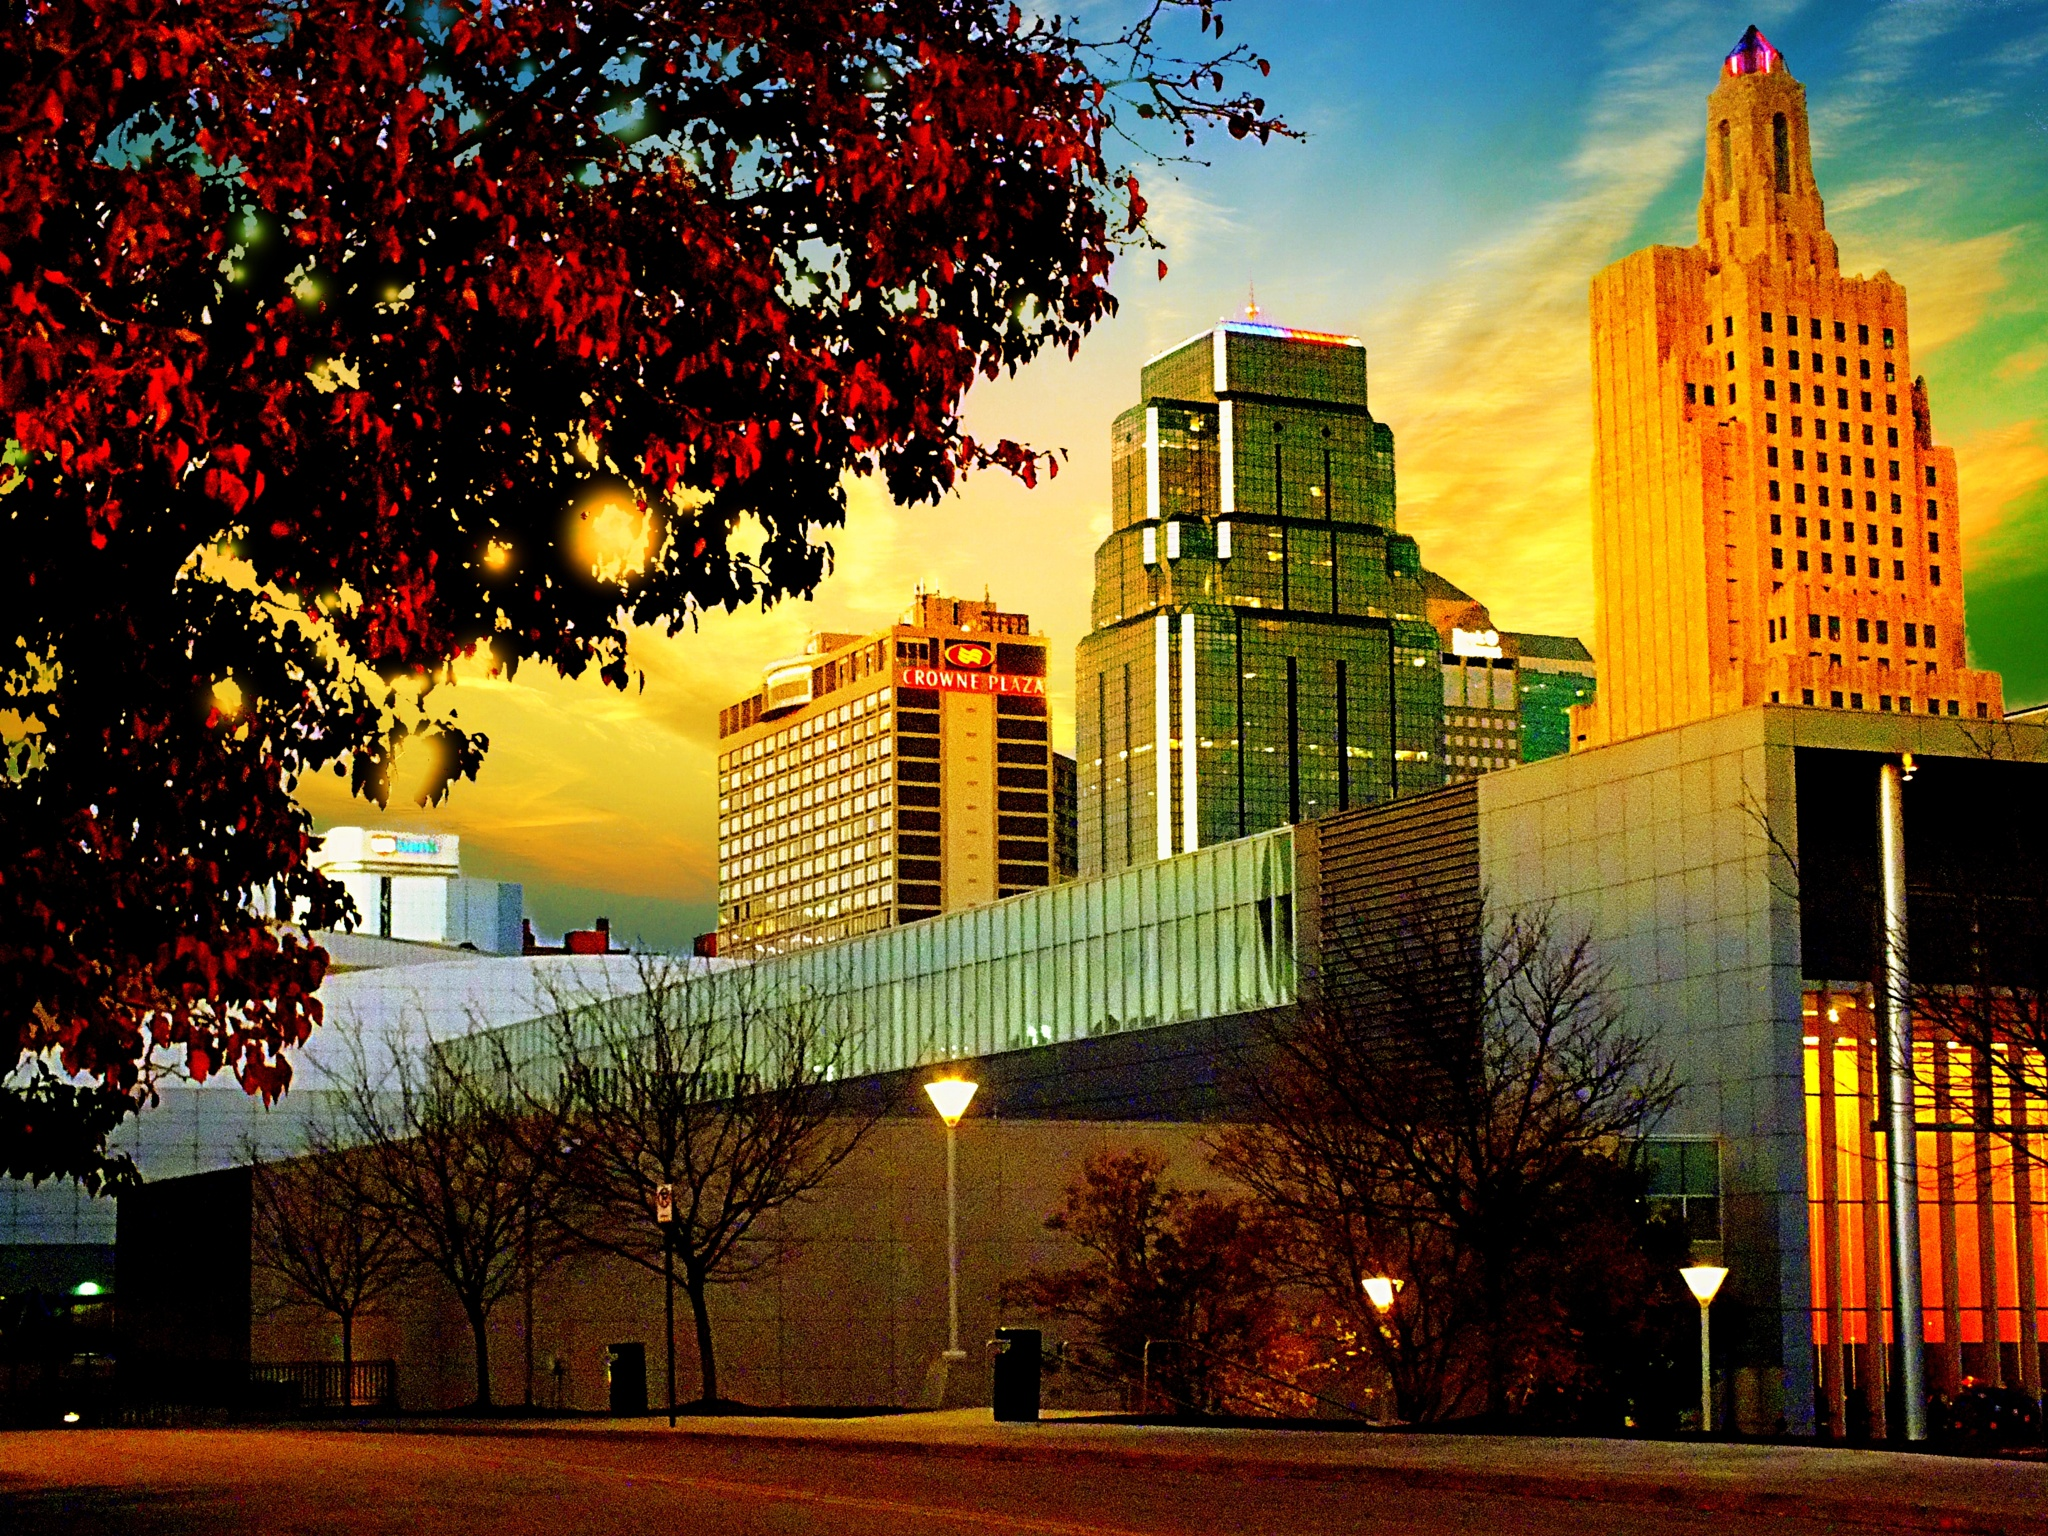 Early Evening, Late Autumn In Downtown Kansas City  by Lorenzo (Larry) Jonree